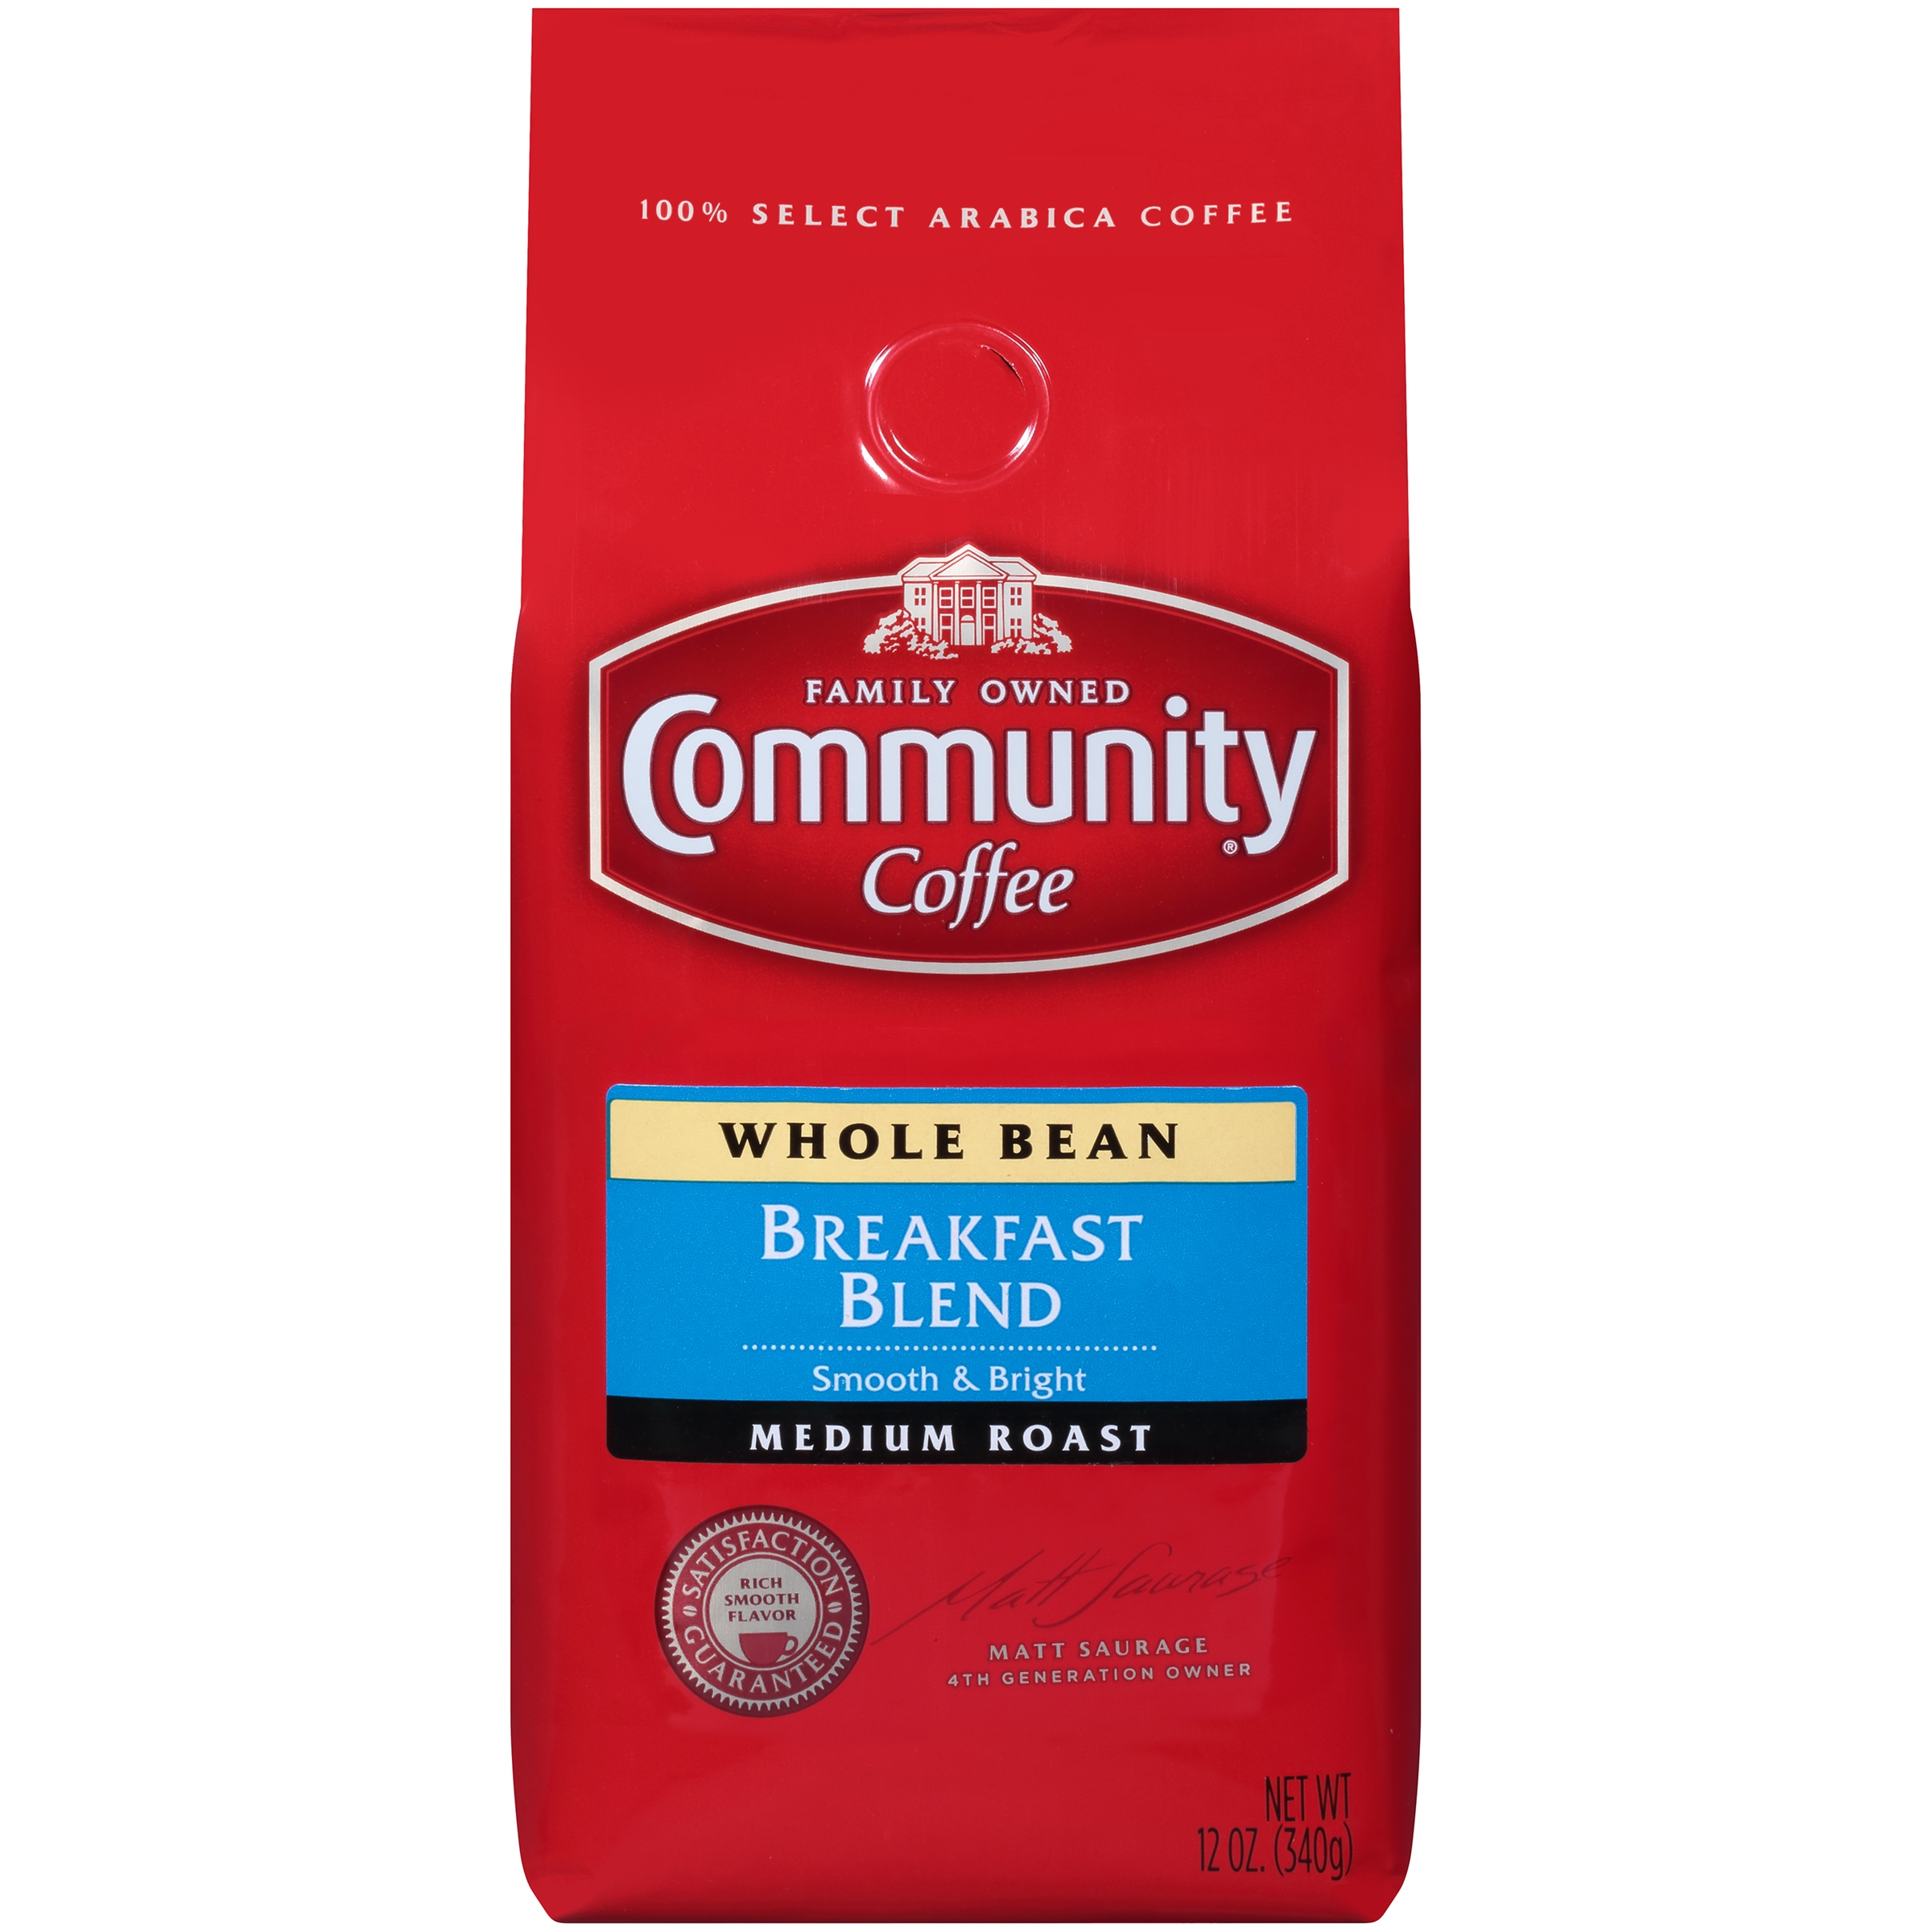 Community Coffee Premium Whole Bean Breakfast Blend Medium Roast Coffee, 12 Ounce